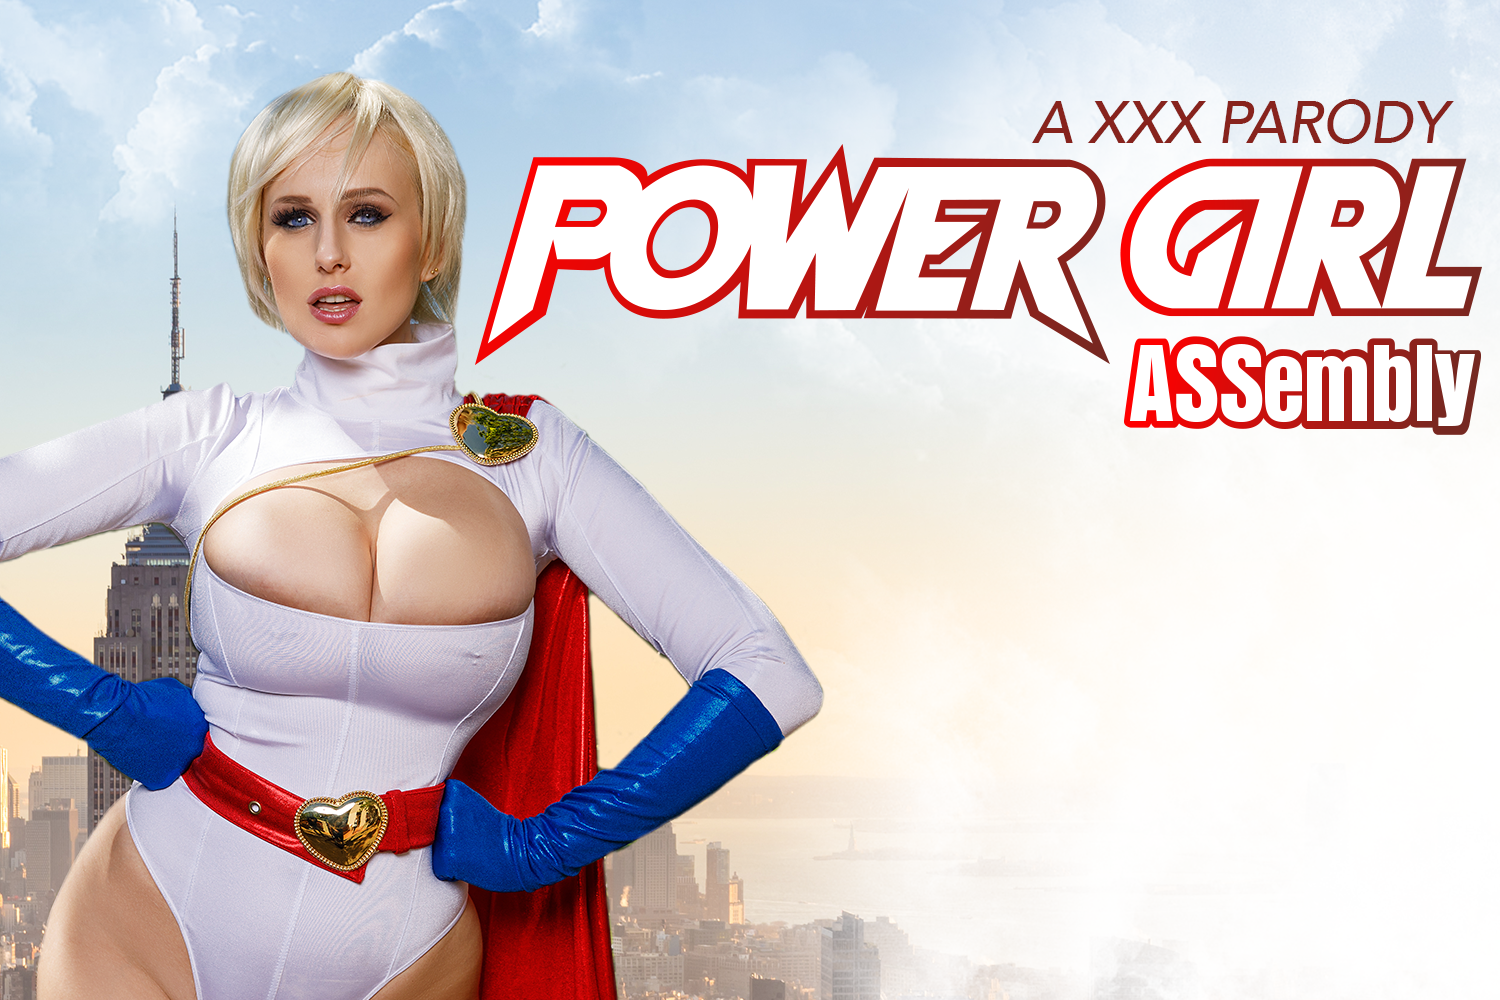 power girl porn